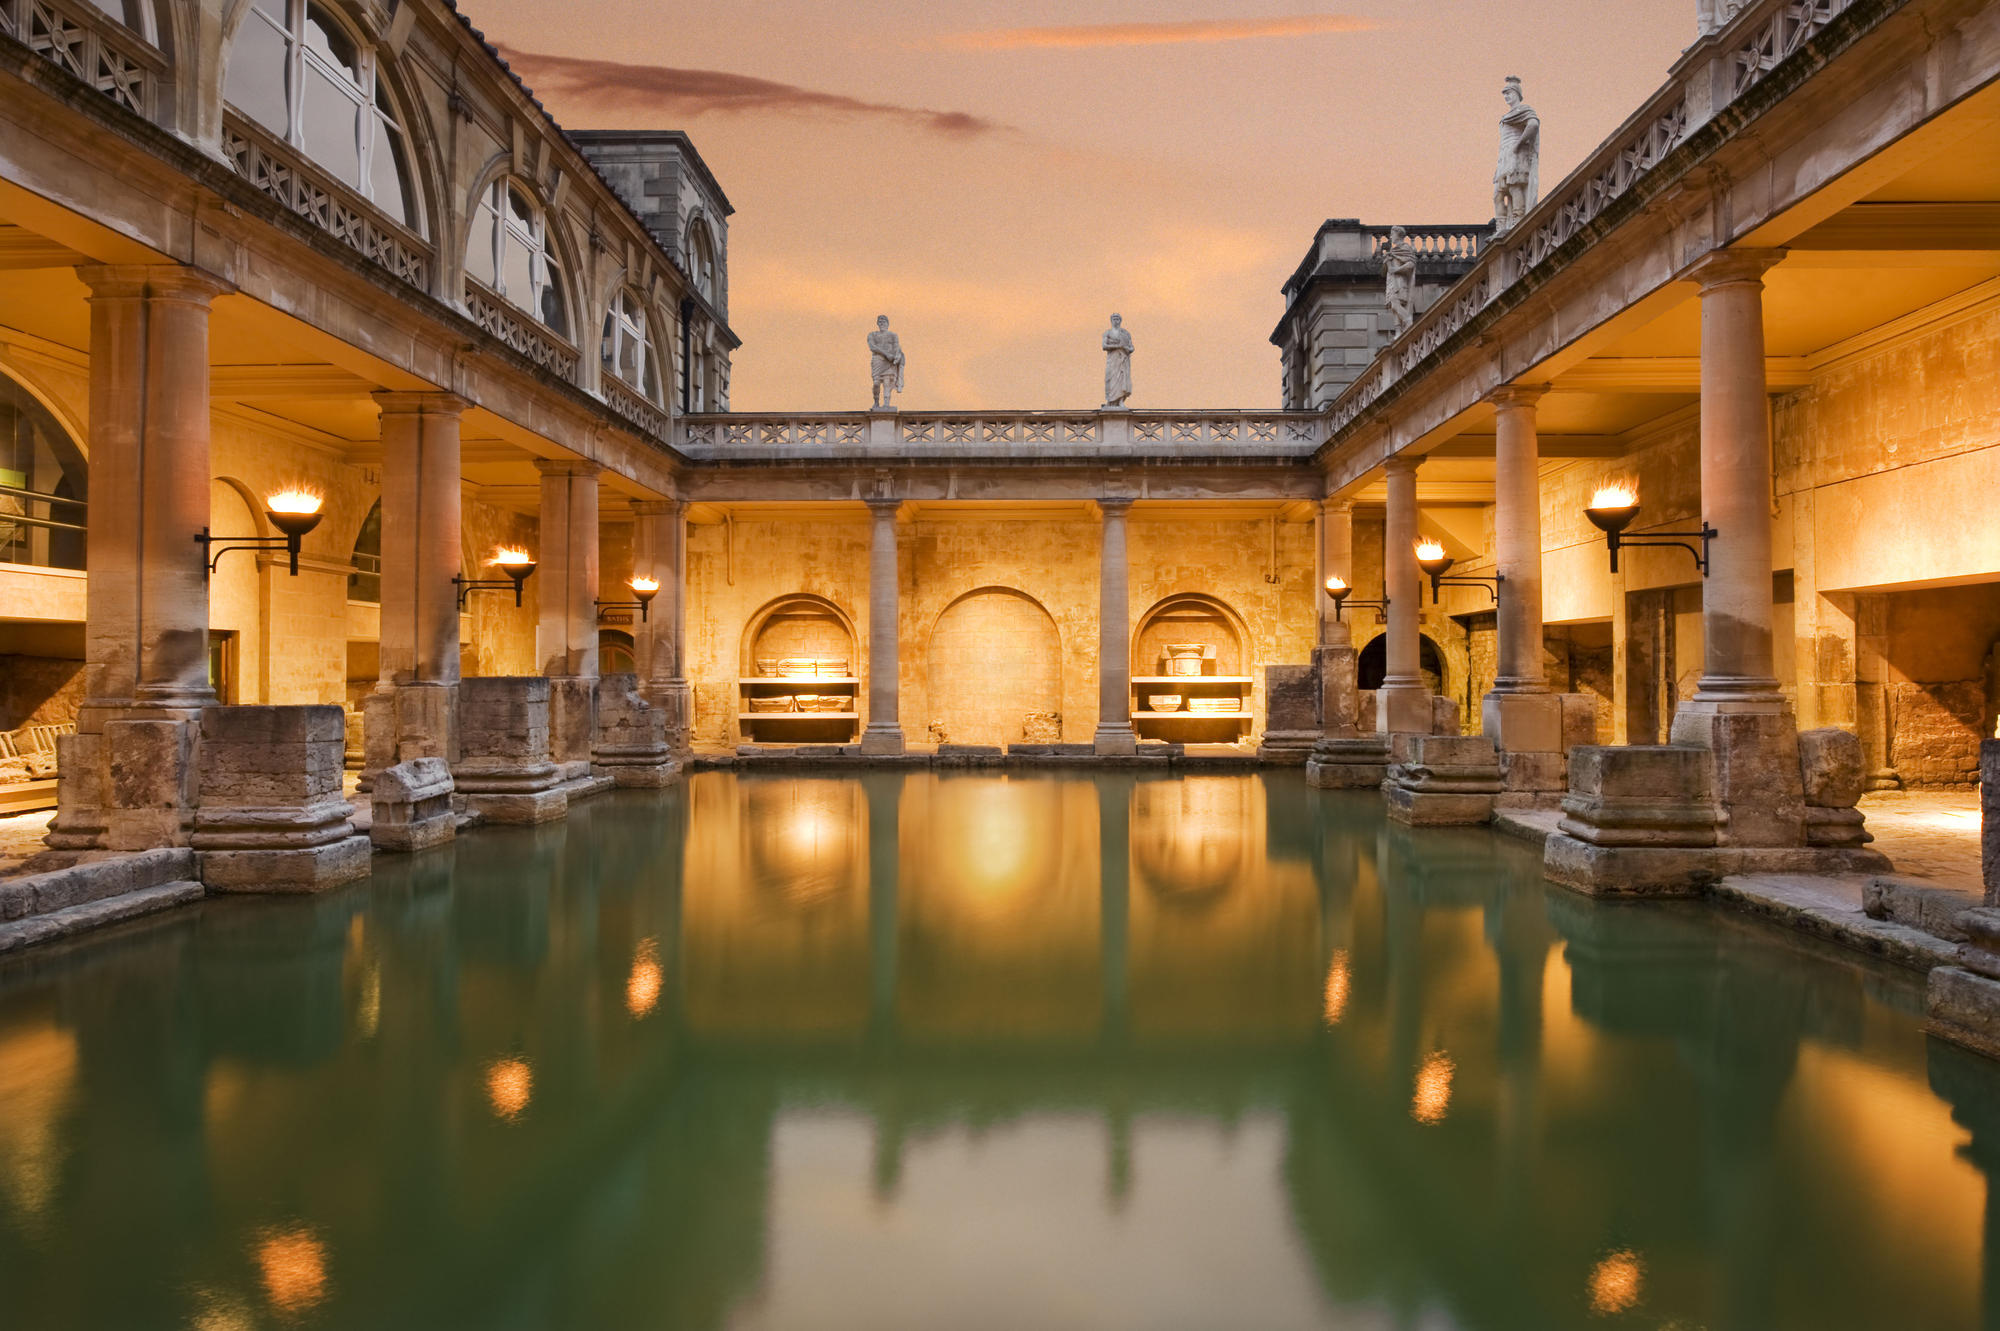 Image: Great Bath